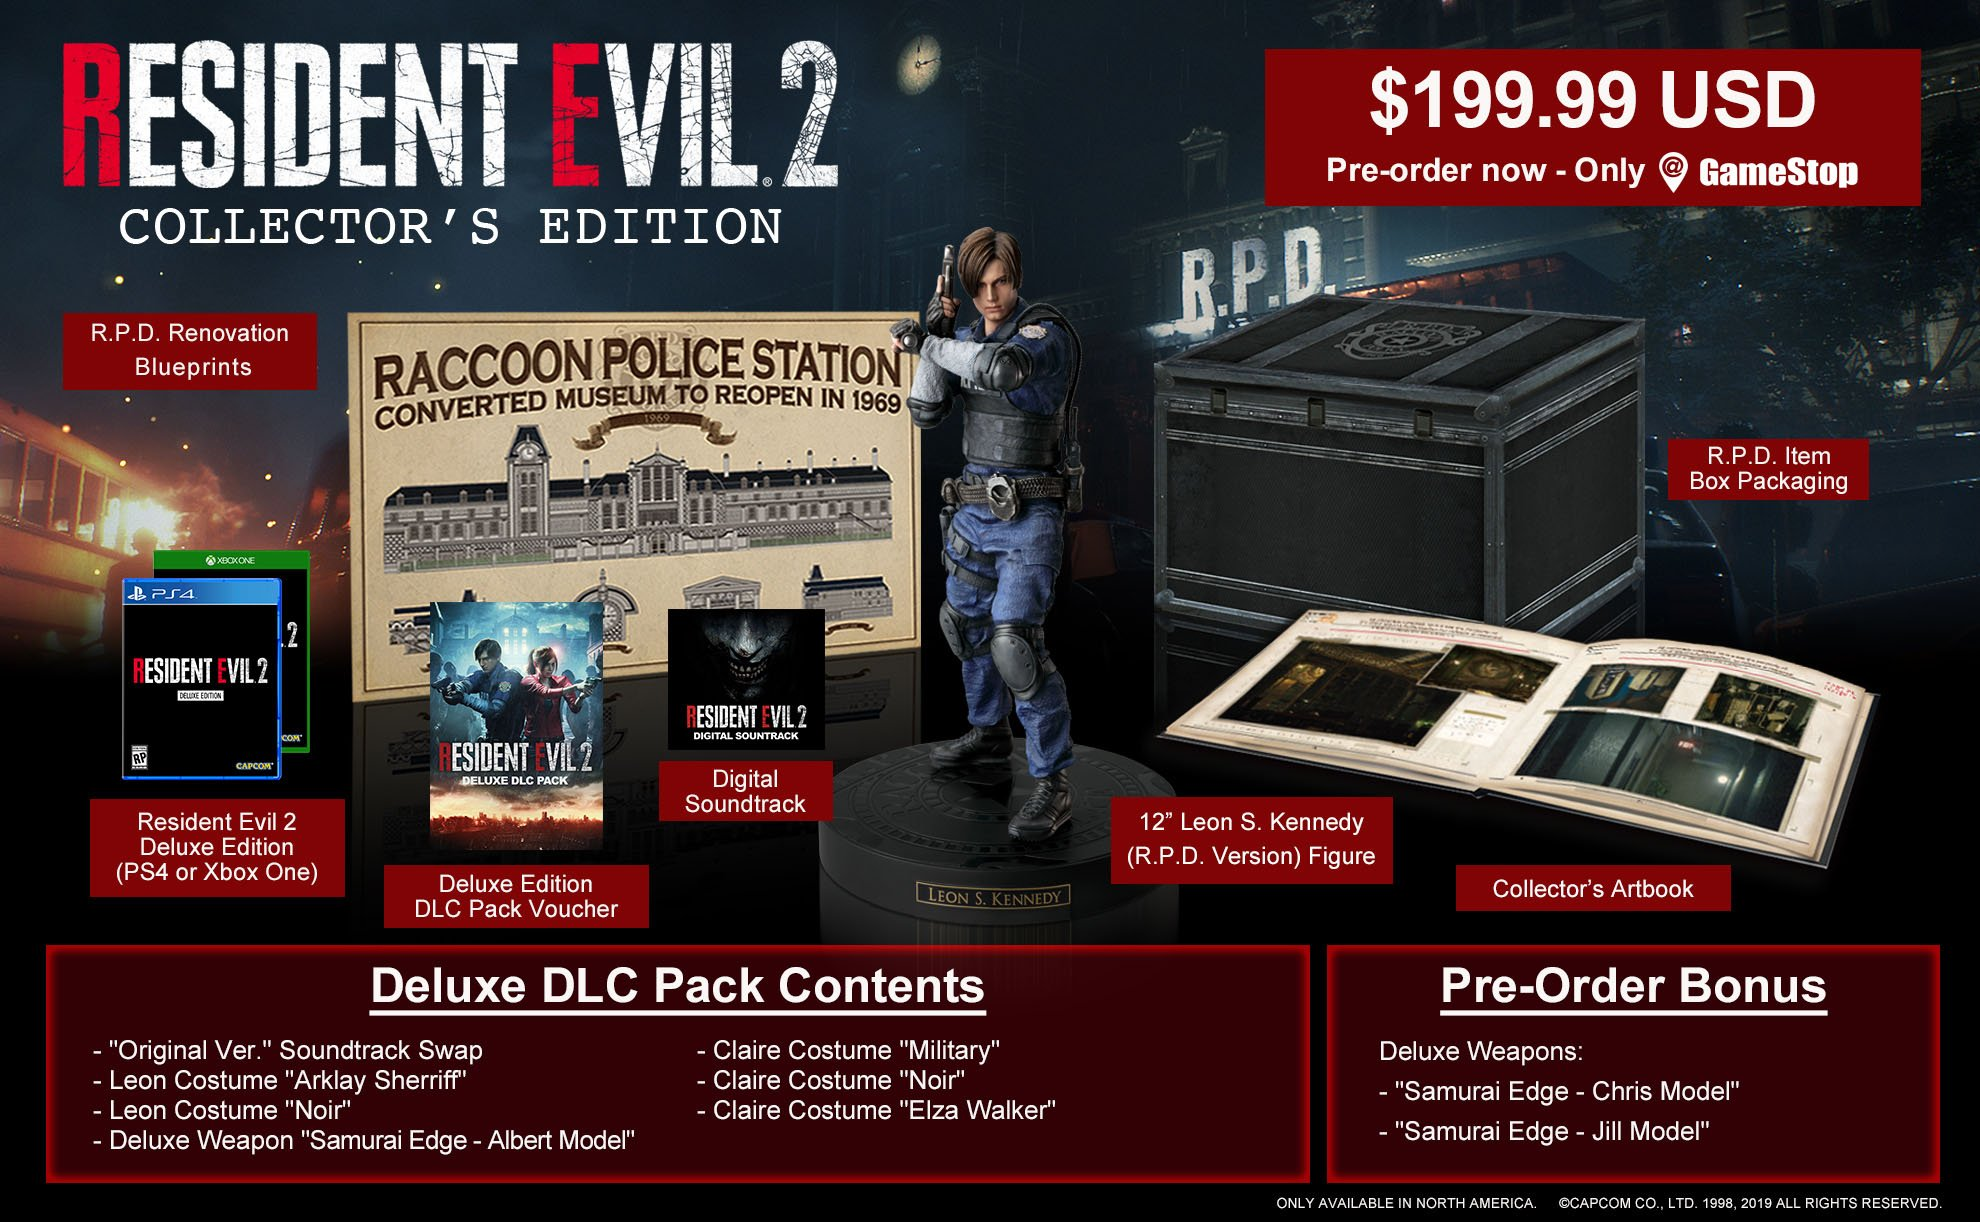 Resident Evil 2 Collector's Edition revealed